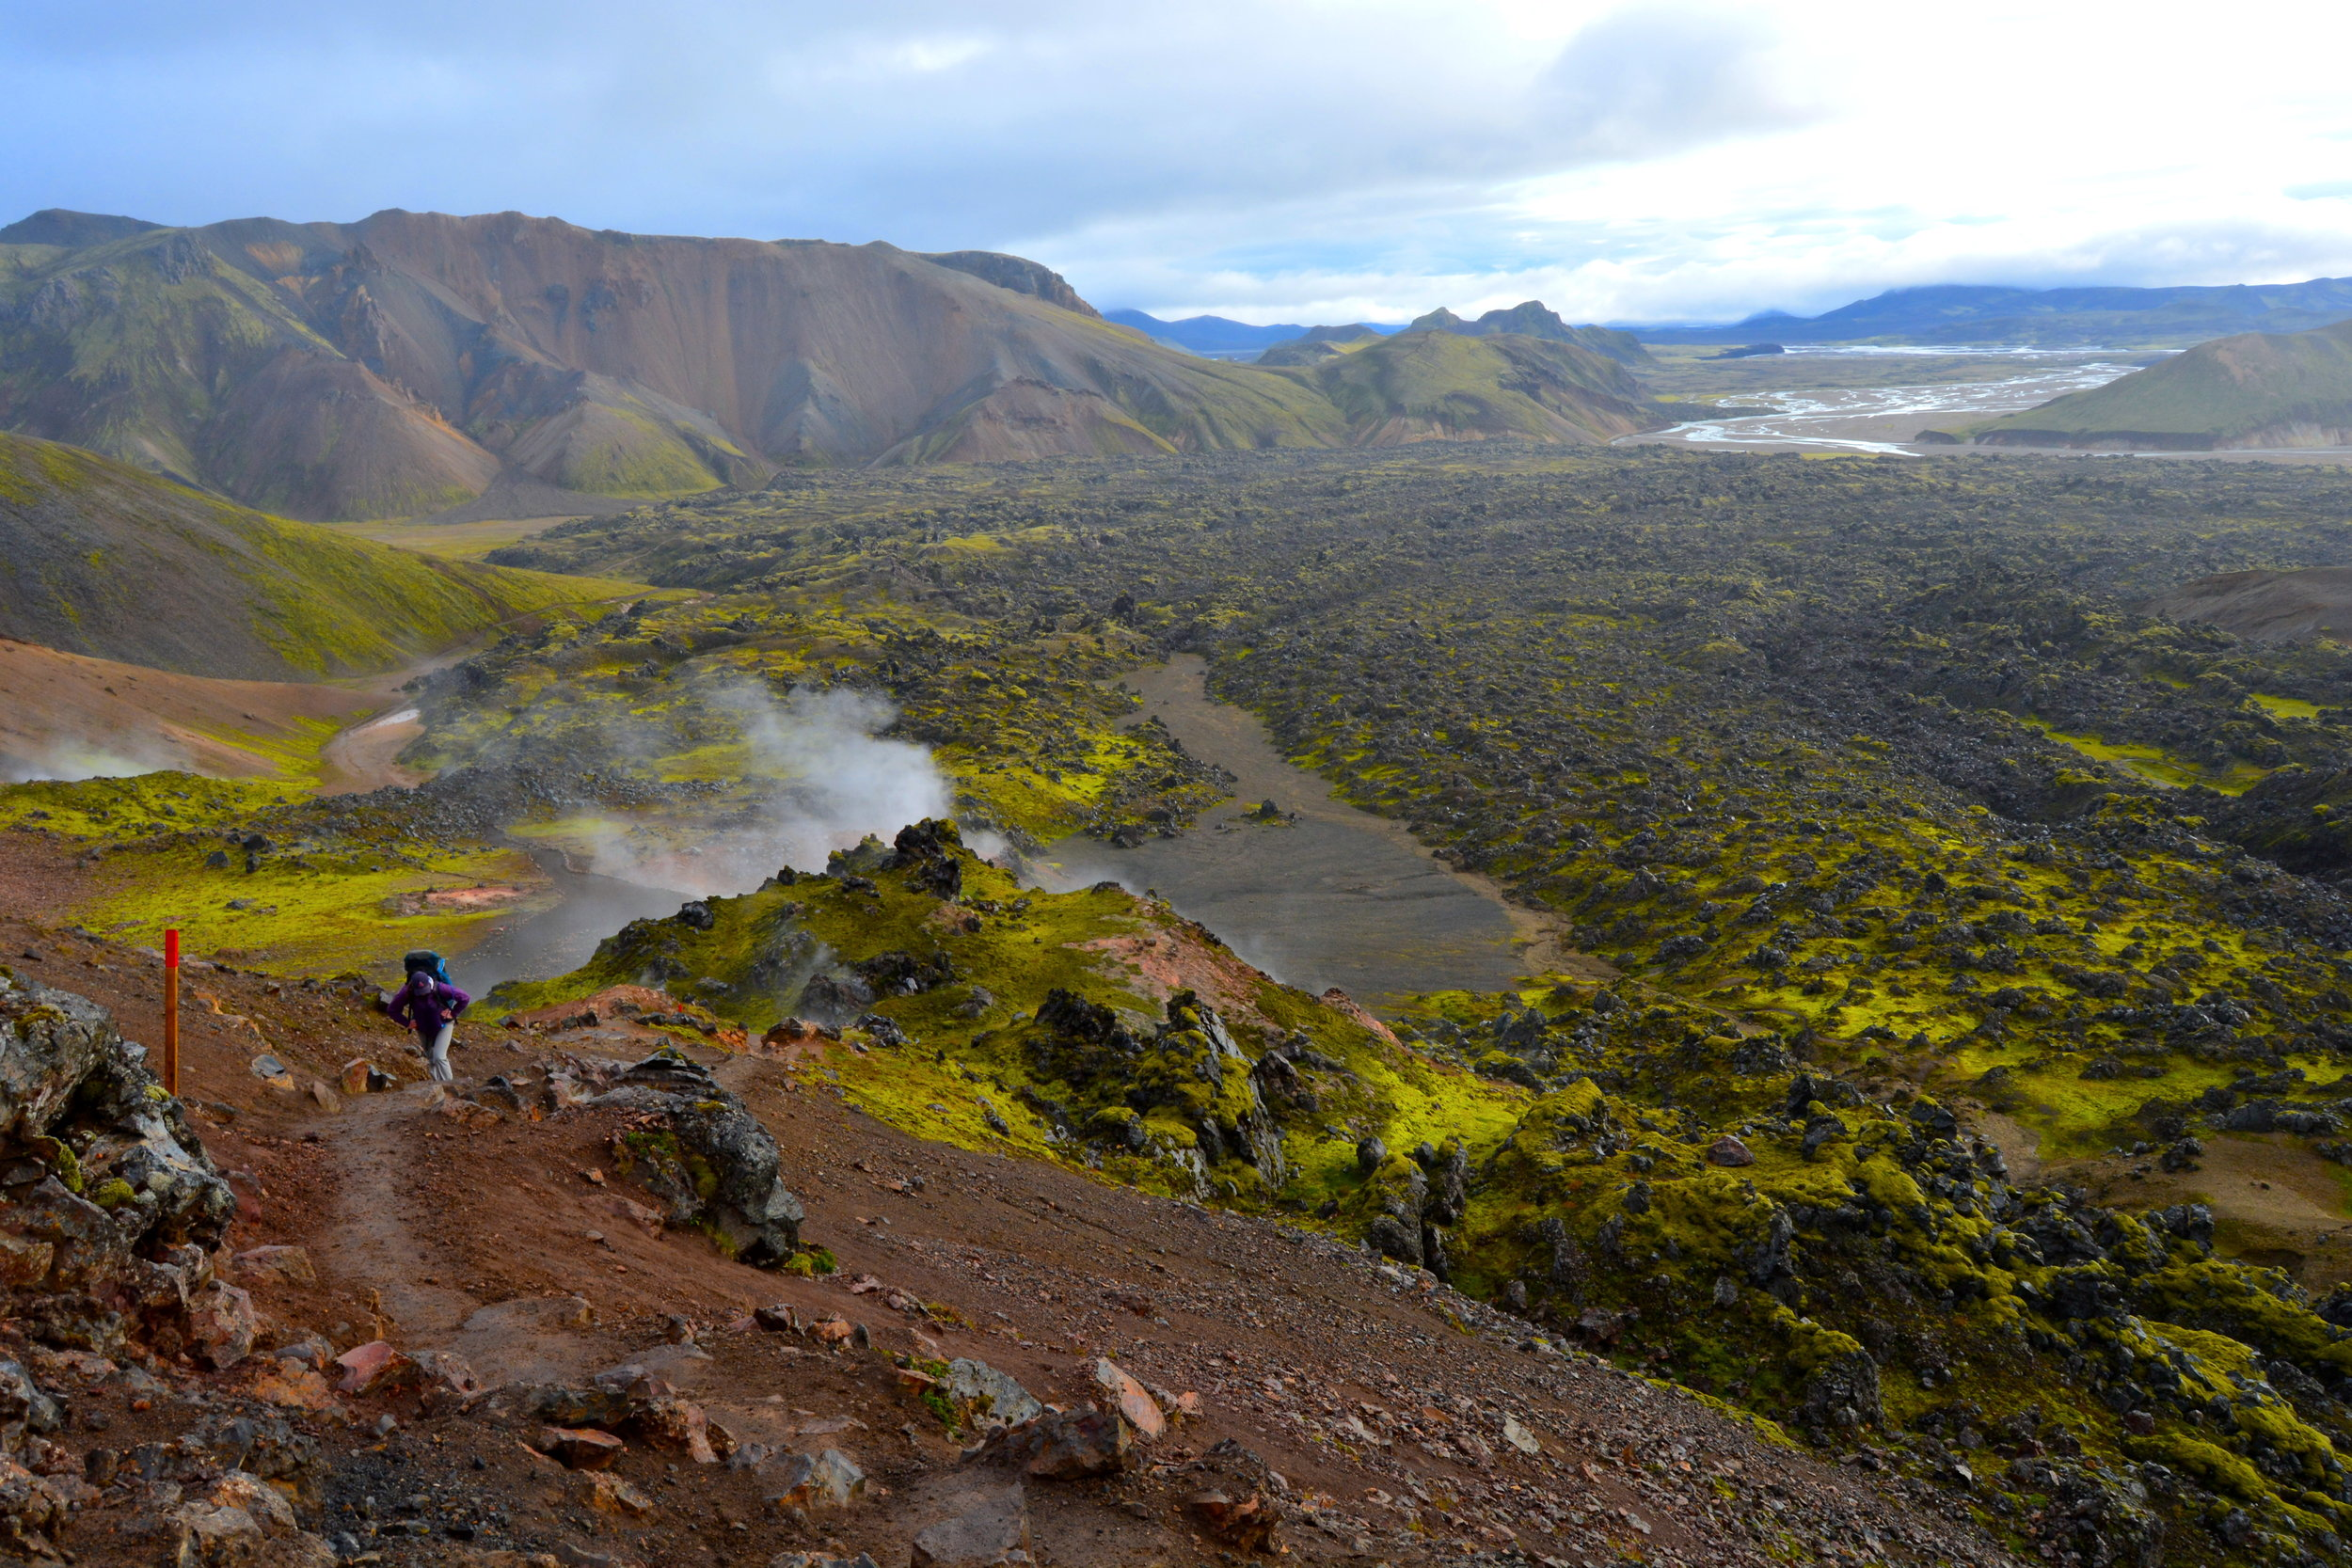 The view from our first steep ascent, looking back at all of the moss-colored lava fields